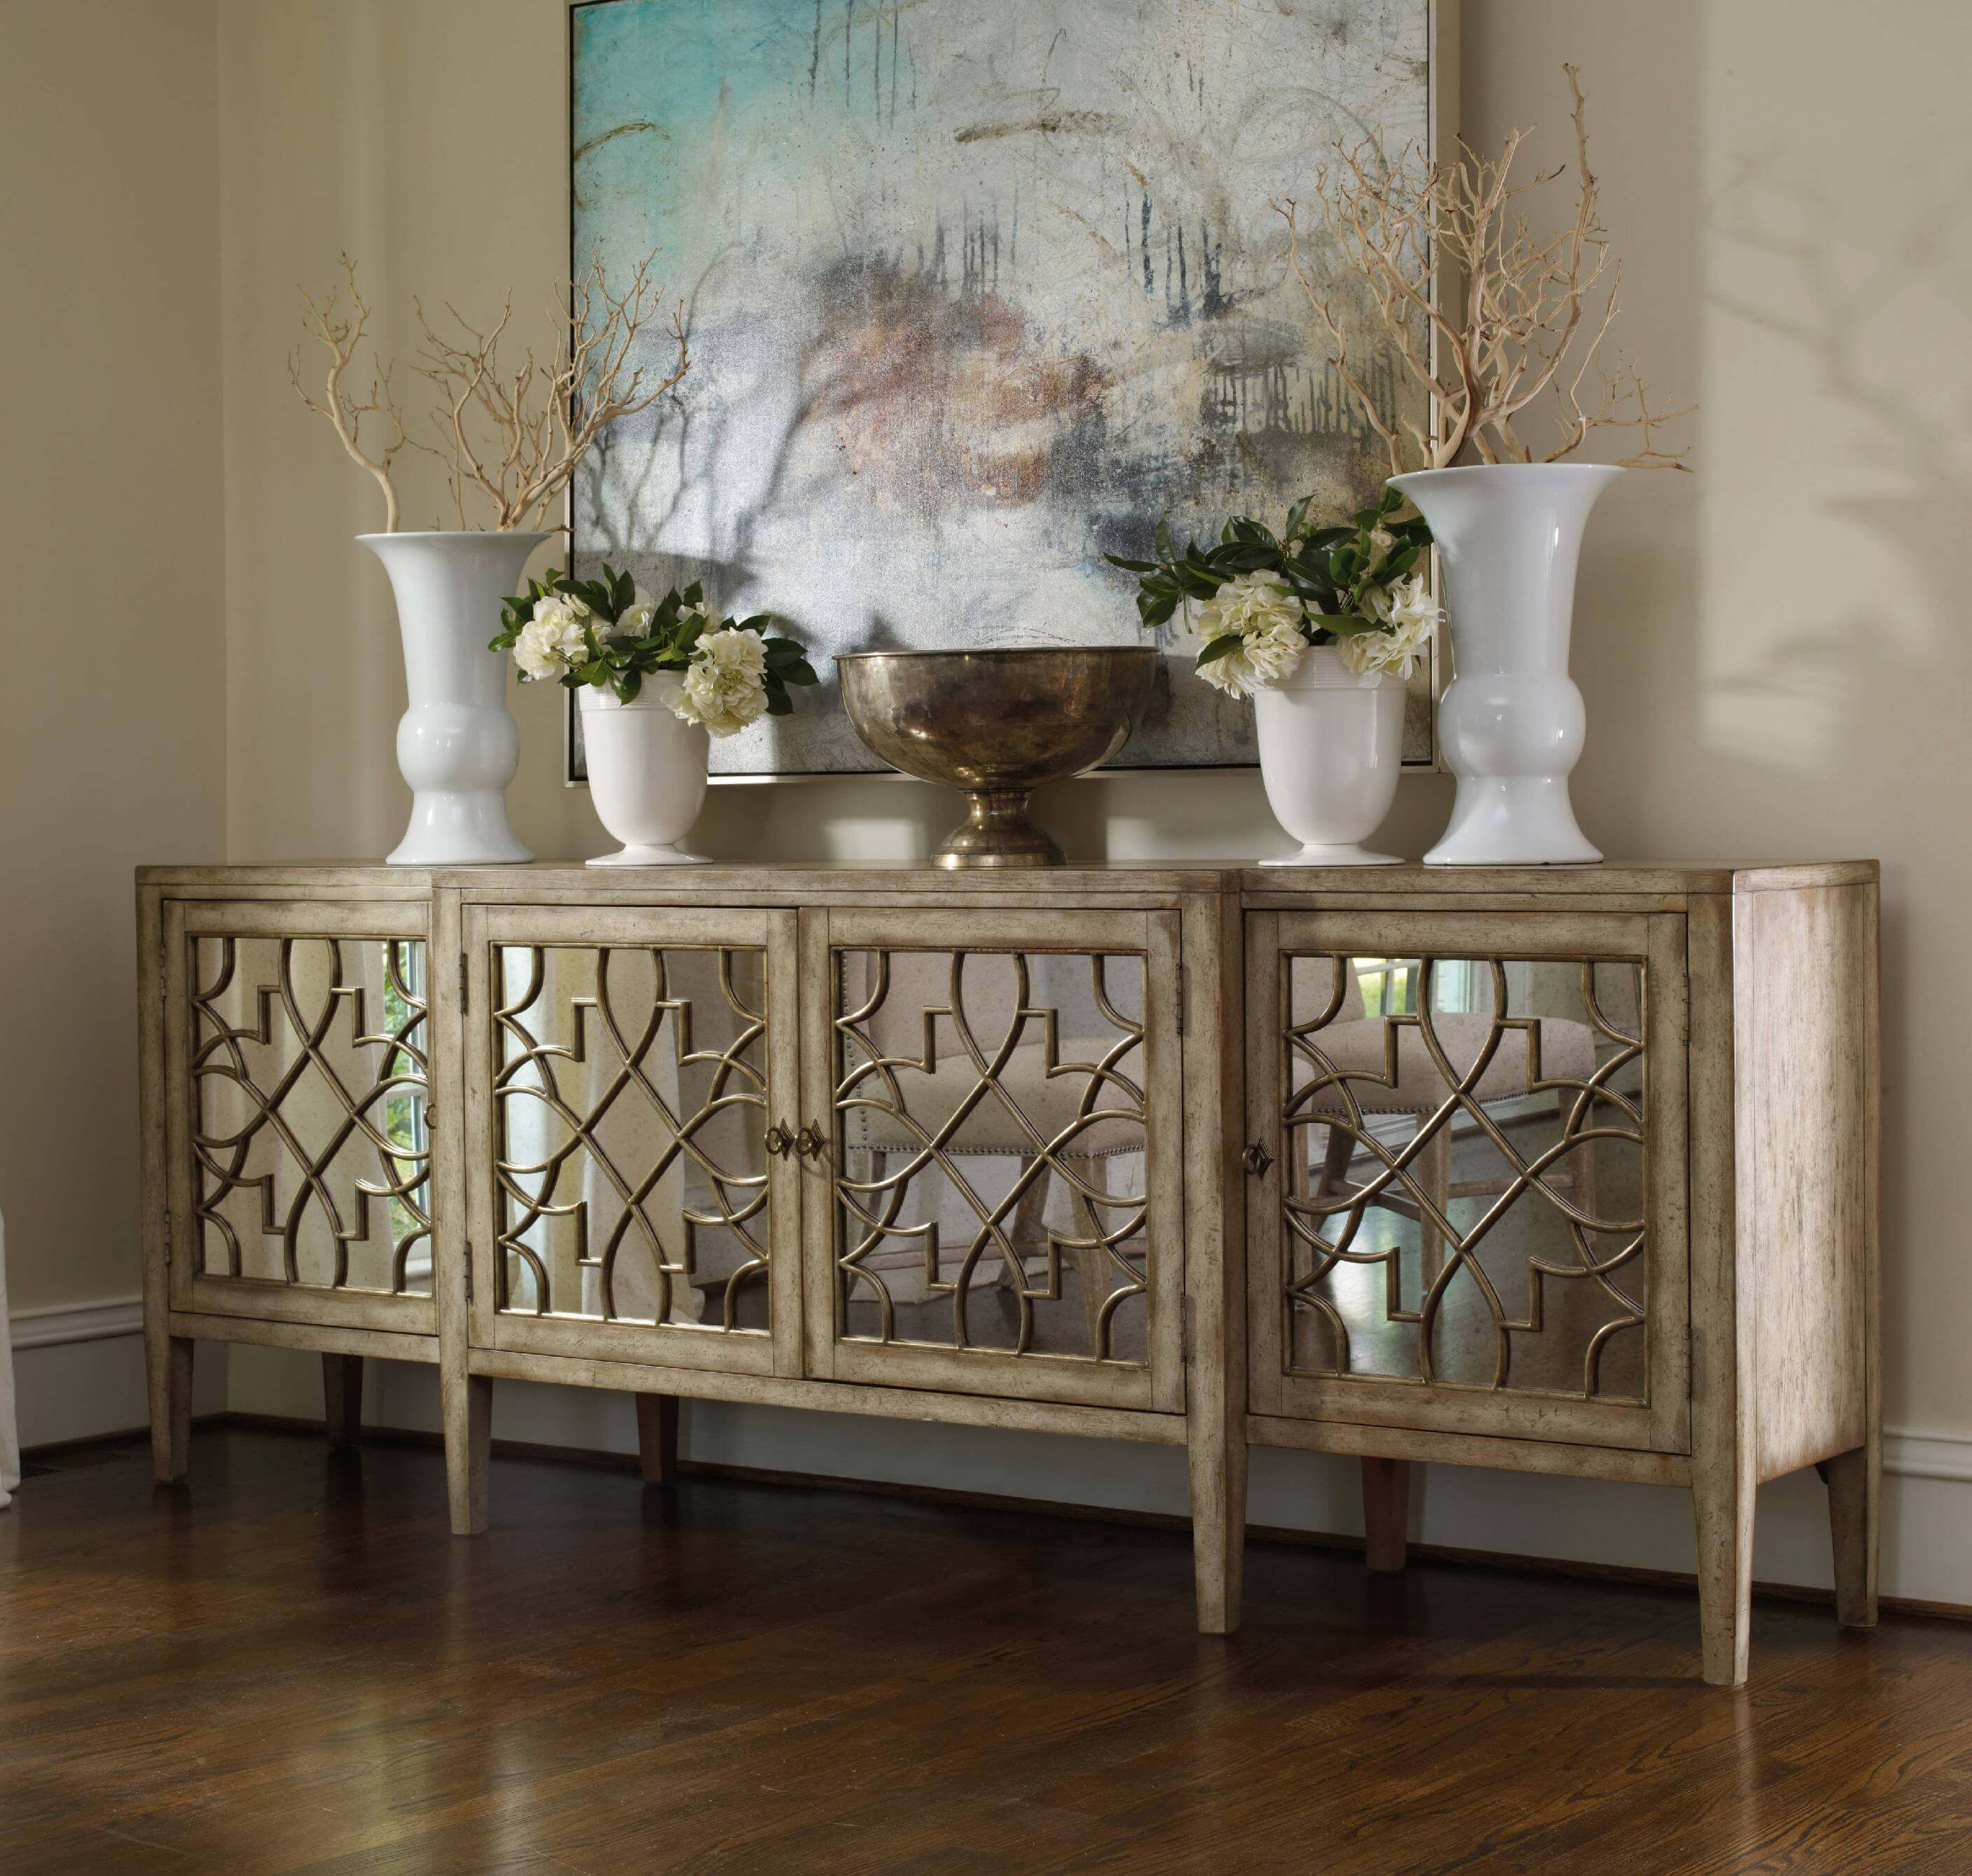 A Solemn Look With Striking Decor Dining Room Buffet Table, Mirrors In Dining  Room,